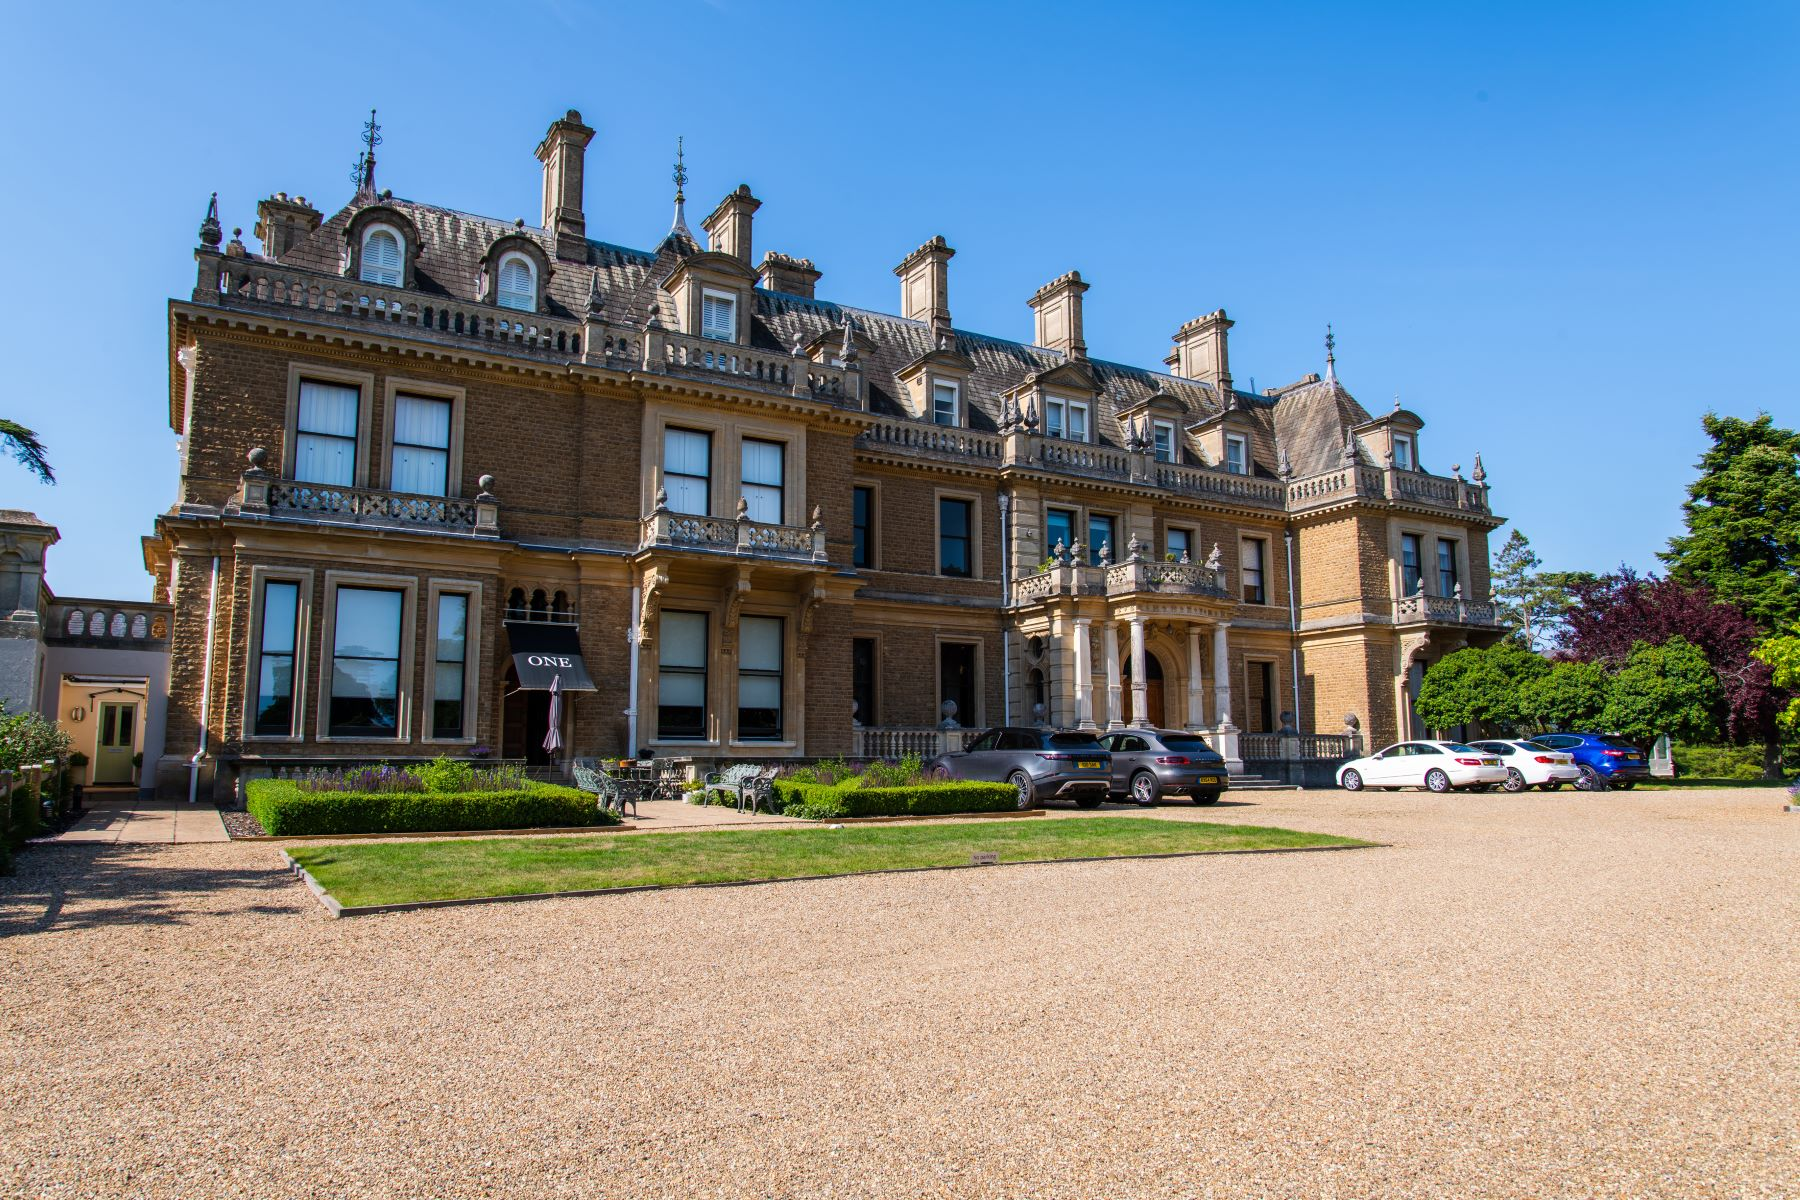 Apartments for Sale at 6 The Mansion Cobham Park Cobham, England KT11 3LE United Kingdom